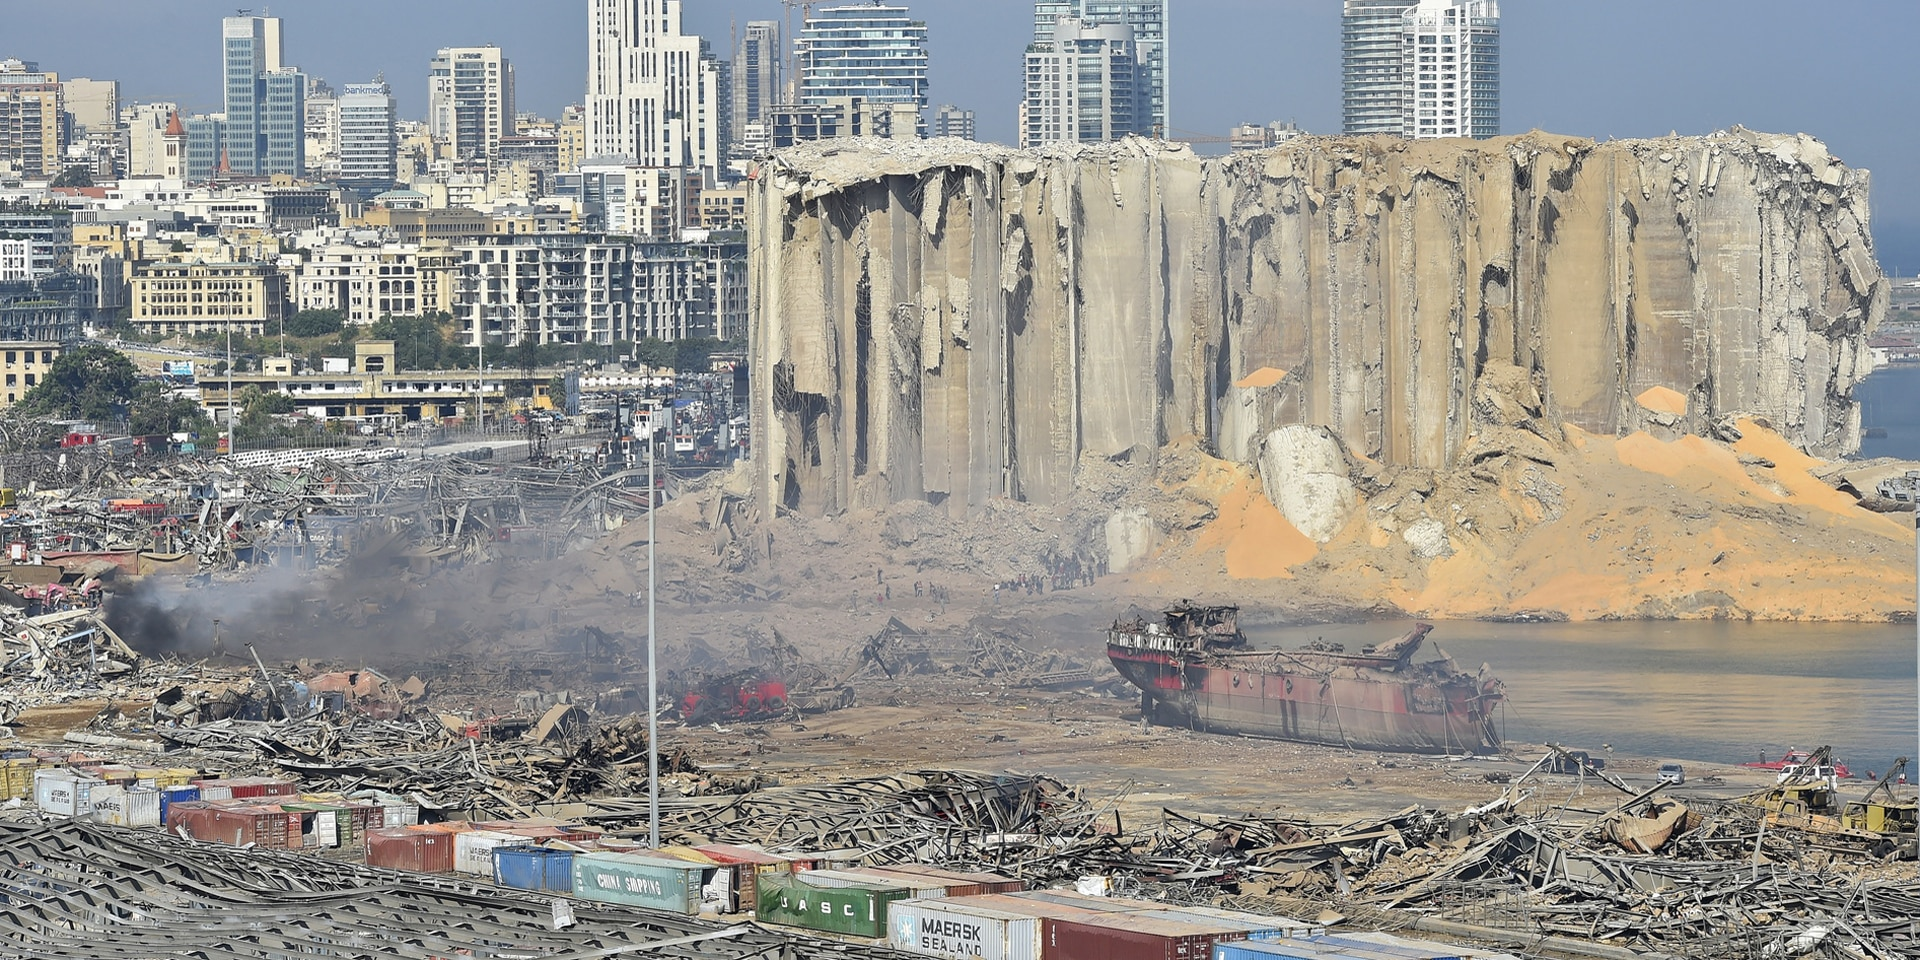 A general view of the destroyed port in the aftermath of the massive explosion in downtown Beirut, Lebanon.